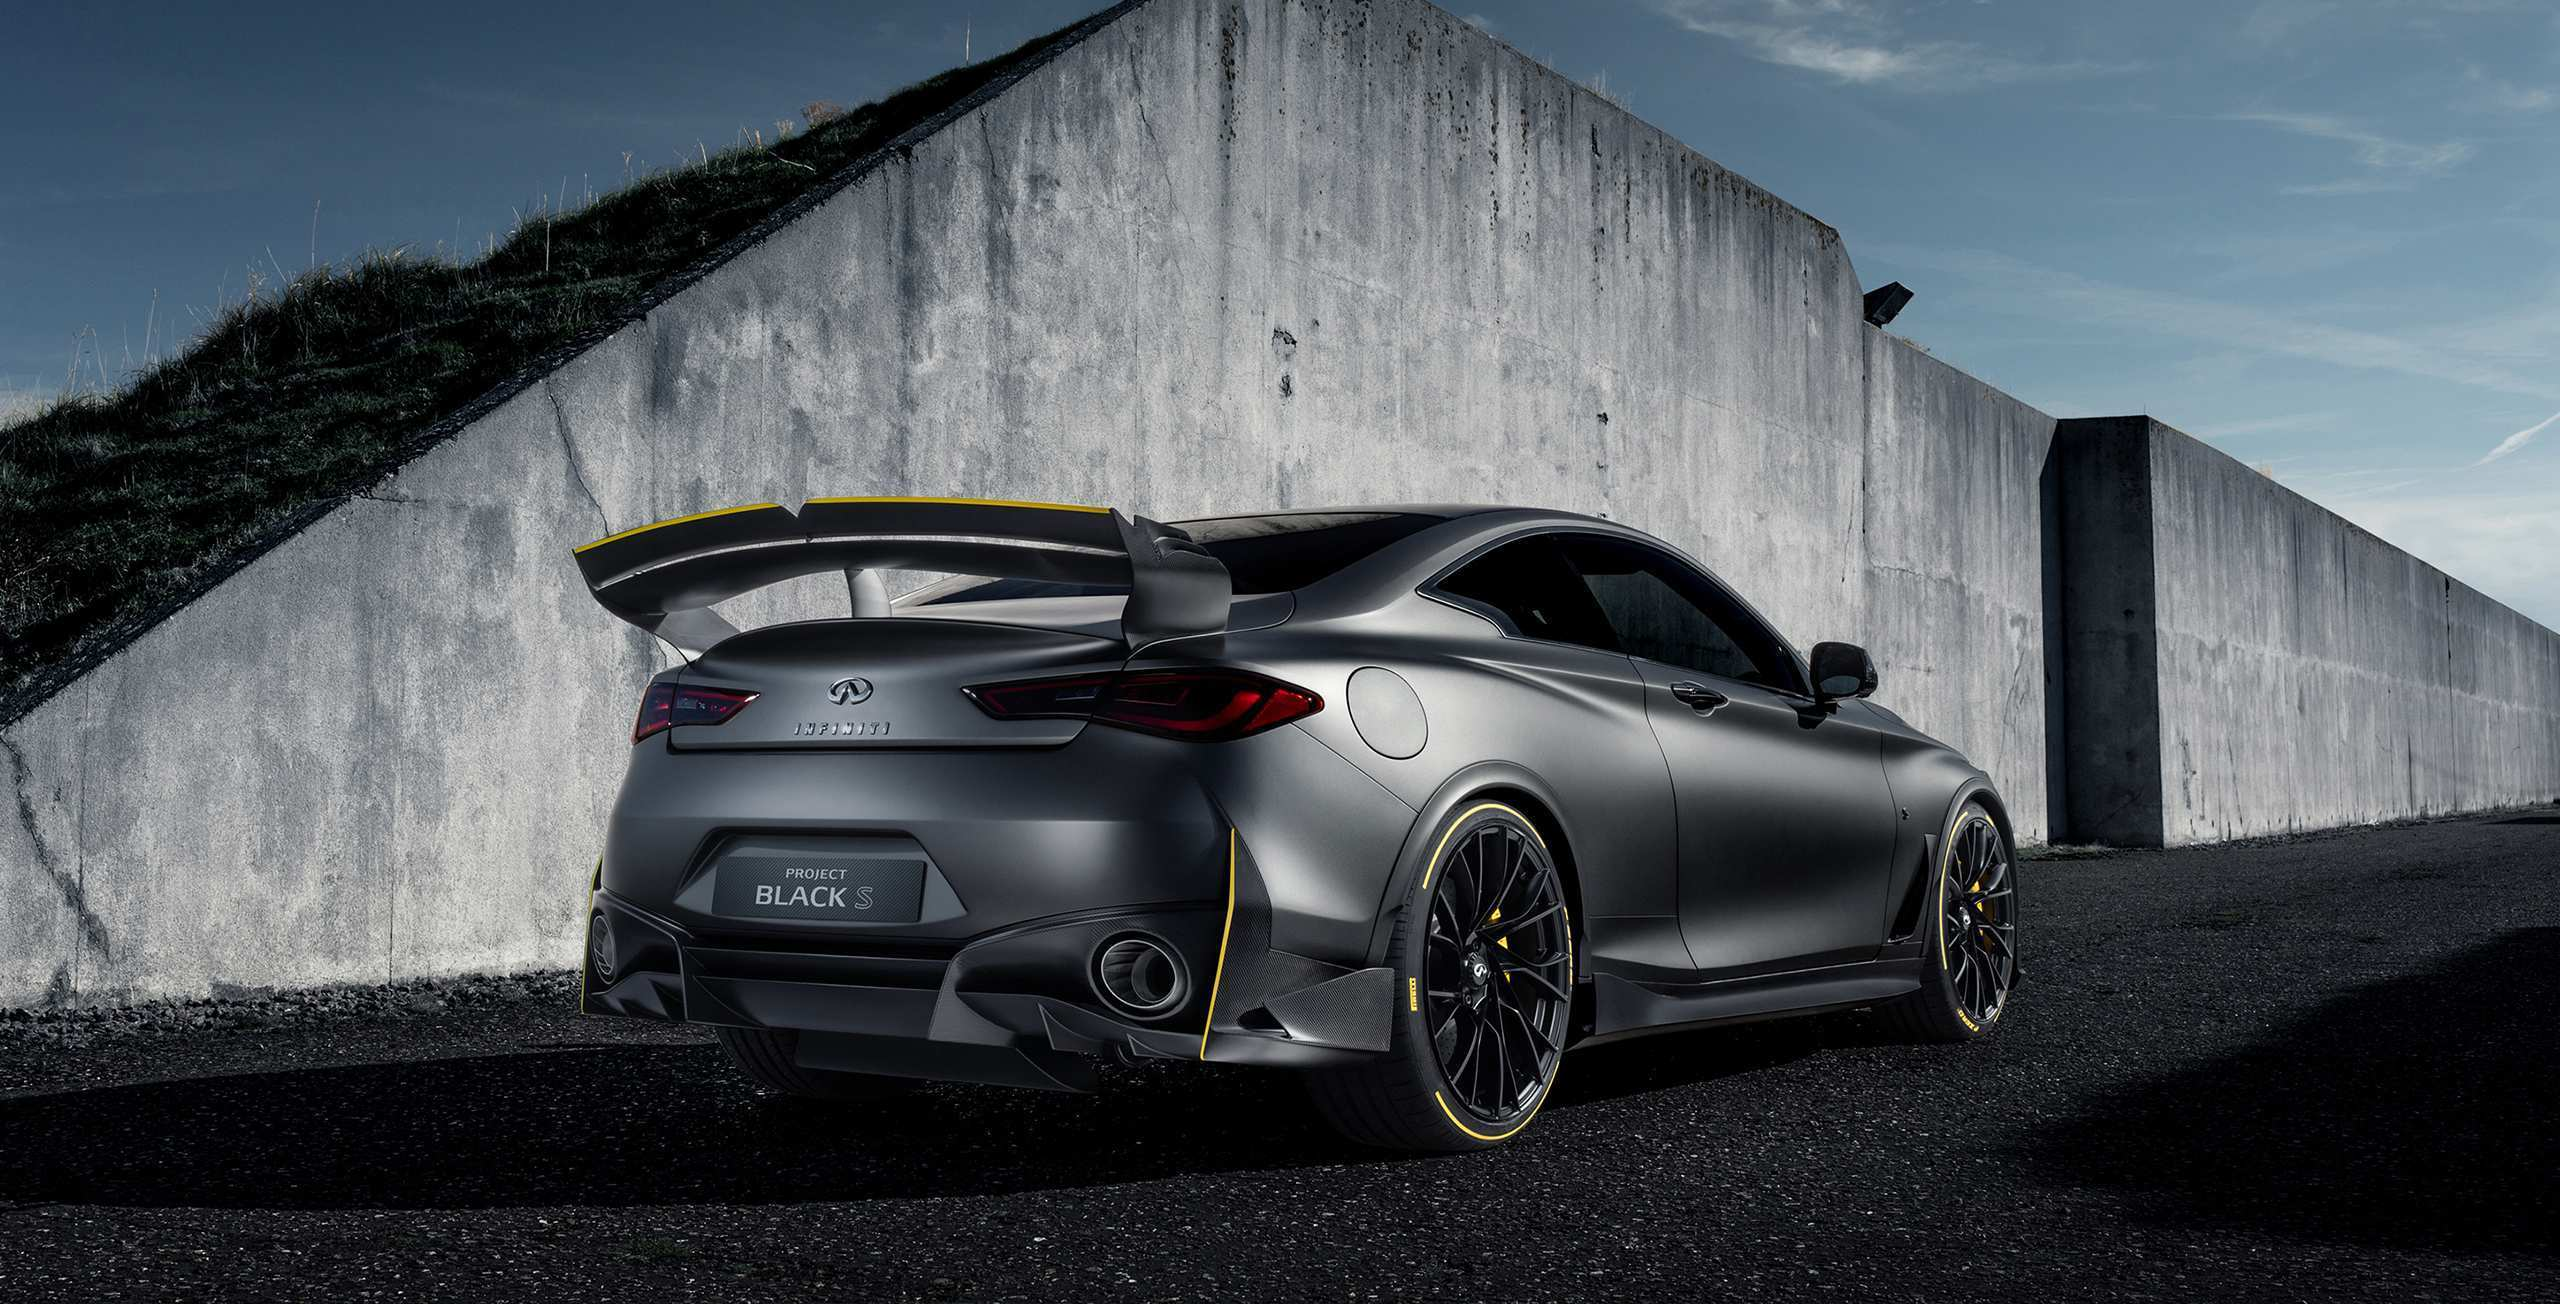 13 All New 2019 Infiniti Q60 Black S Release Date And Concept